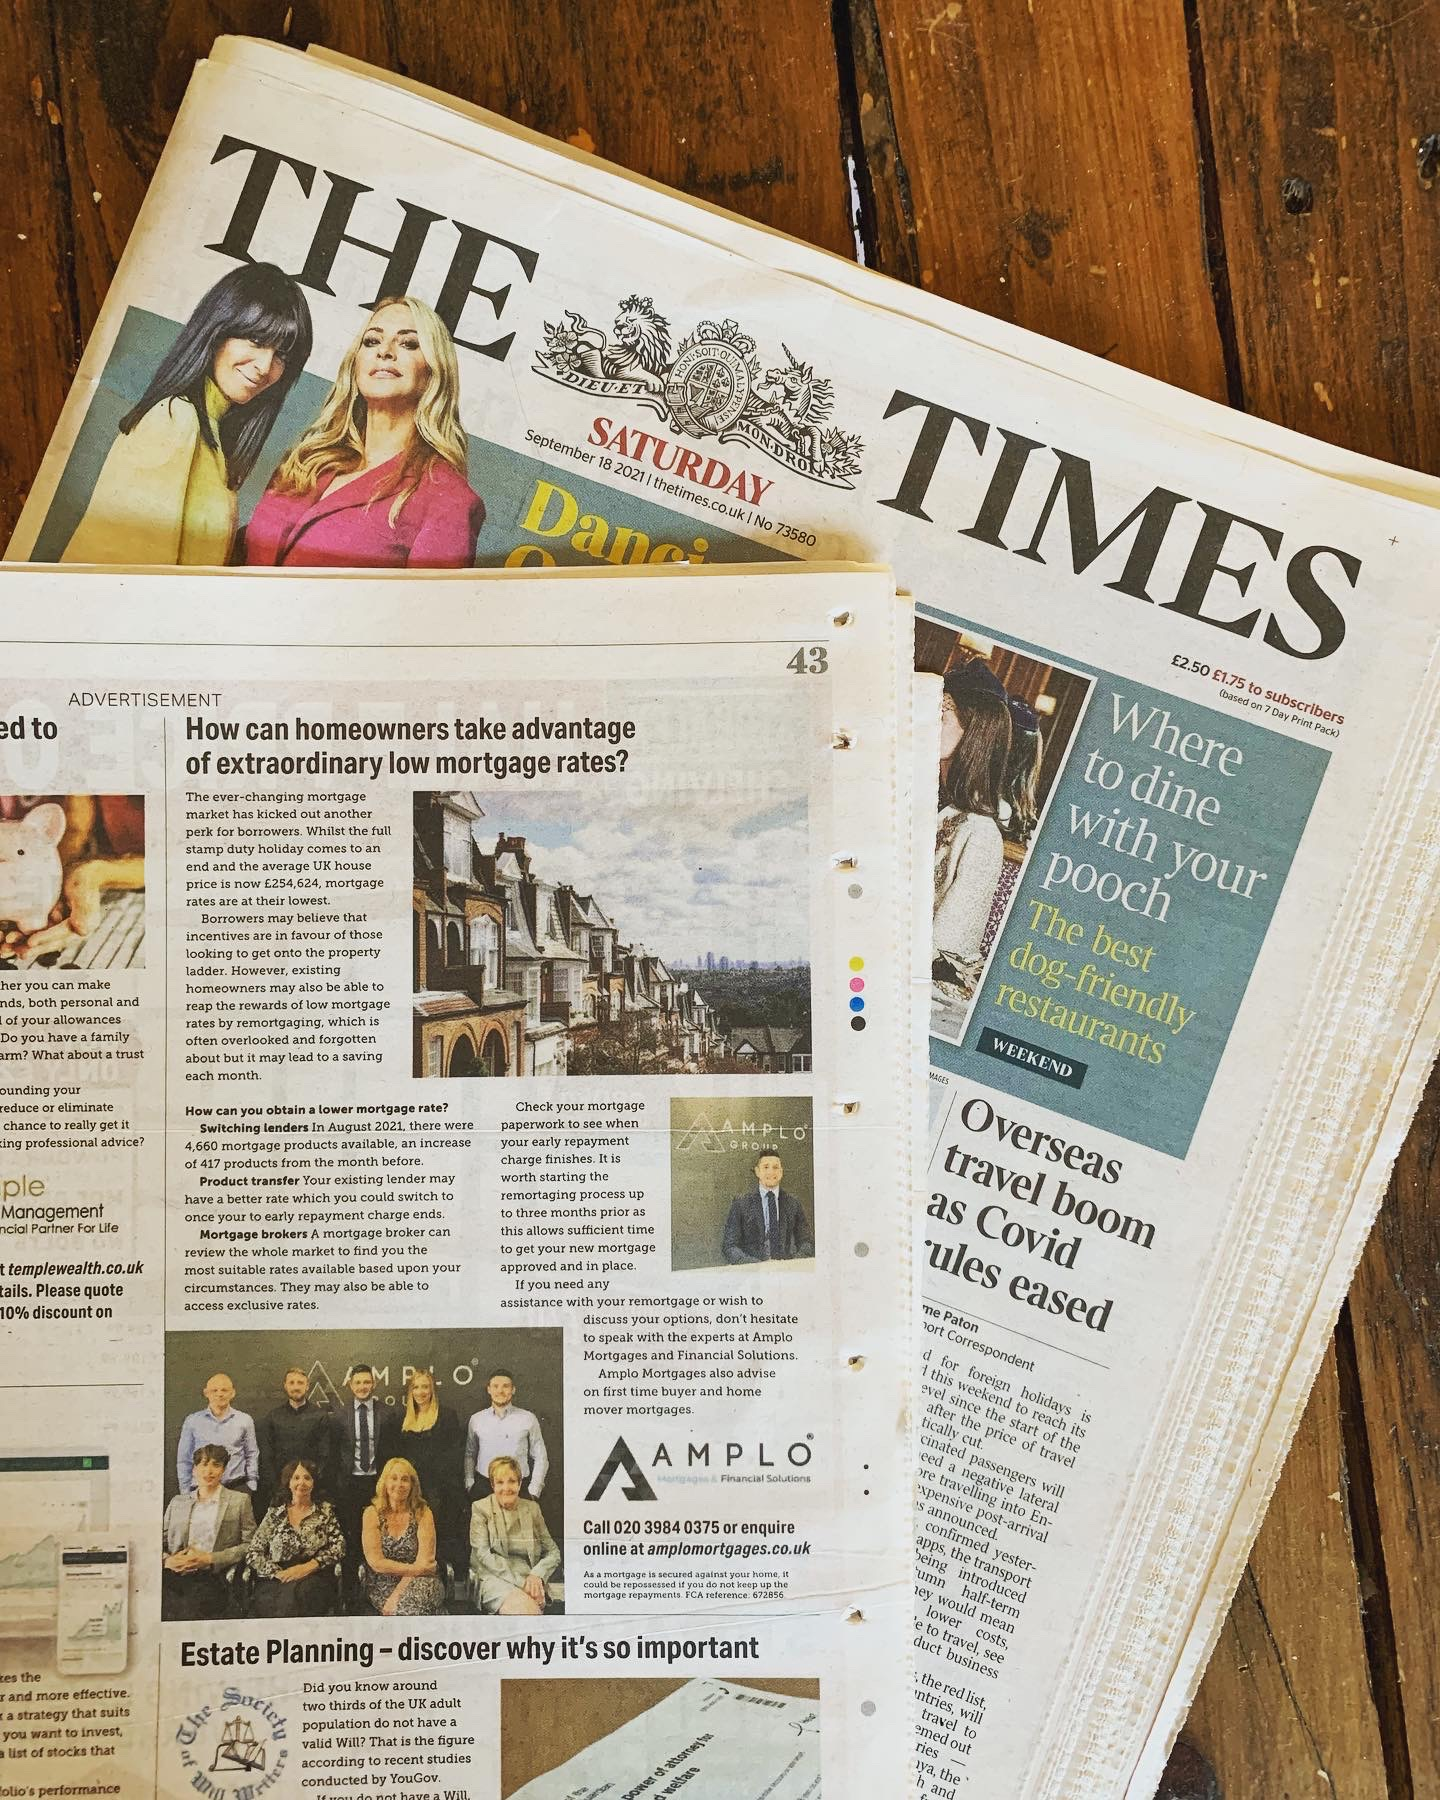 Amplo Mortgages featured in The Times & The Telegraph